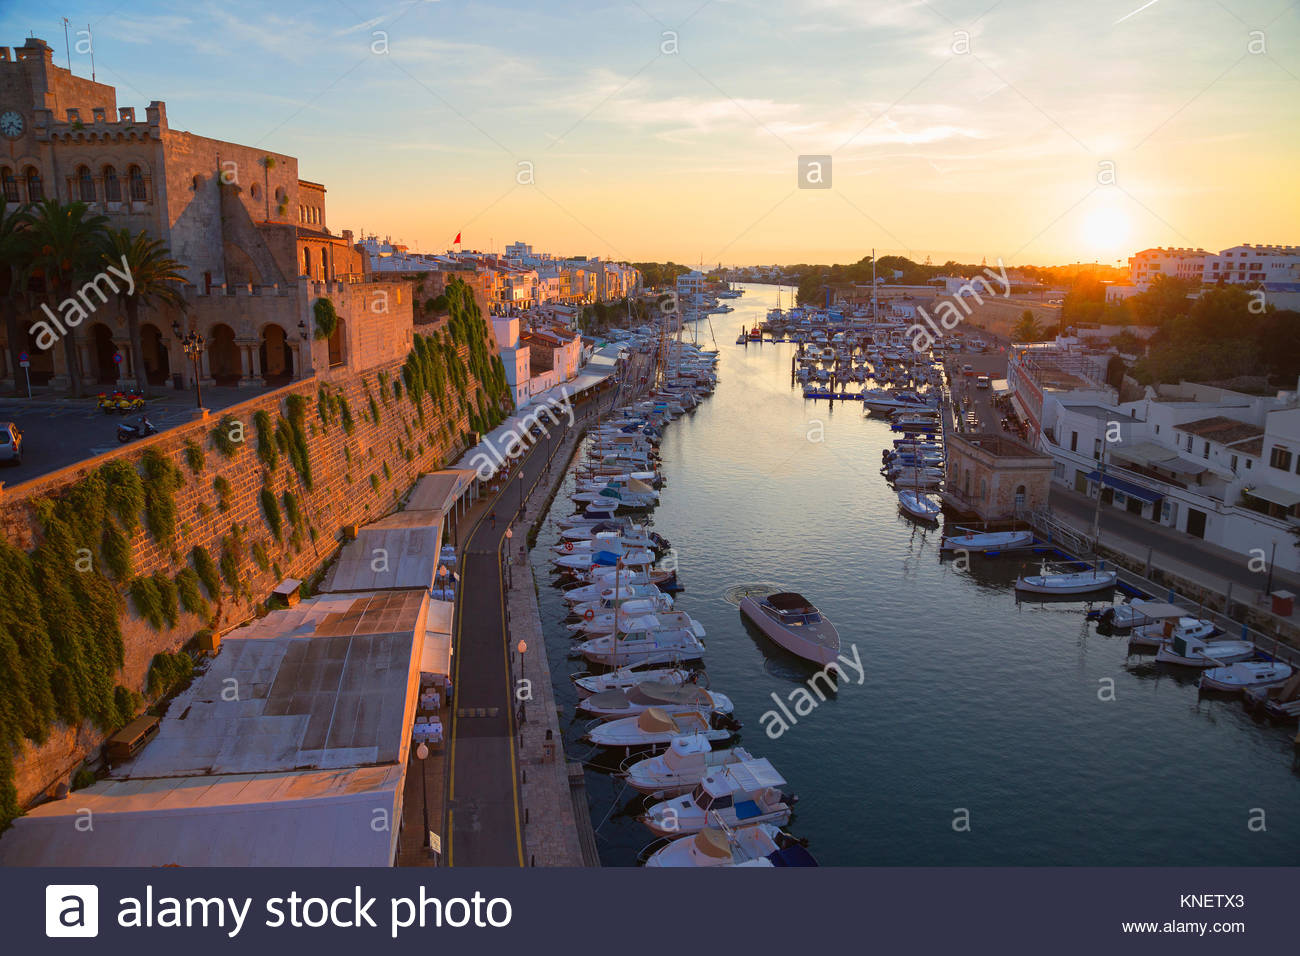 View of historic harbour waterfront and town hall at sunset, Ciutadella, Menorca, Balearic Islands, Spain - Stock Image